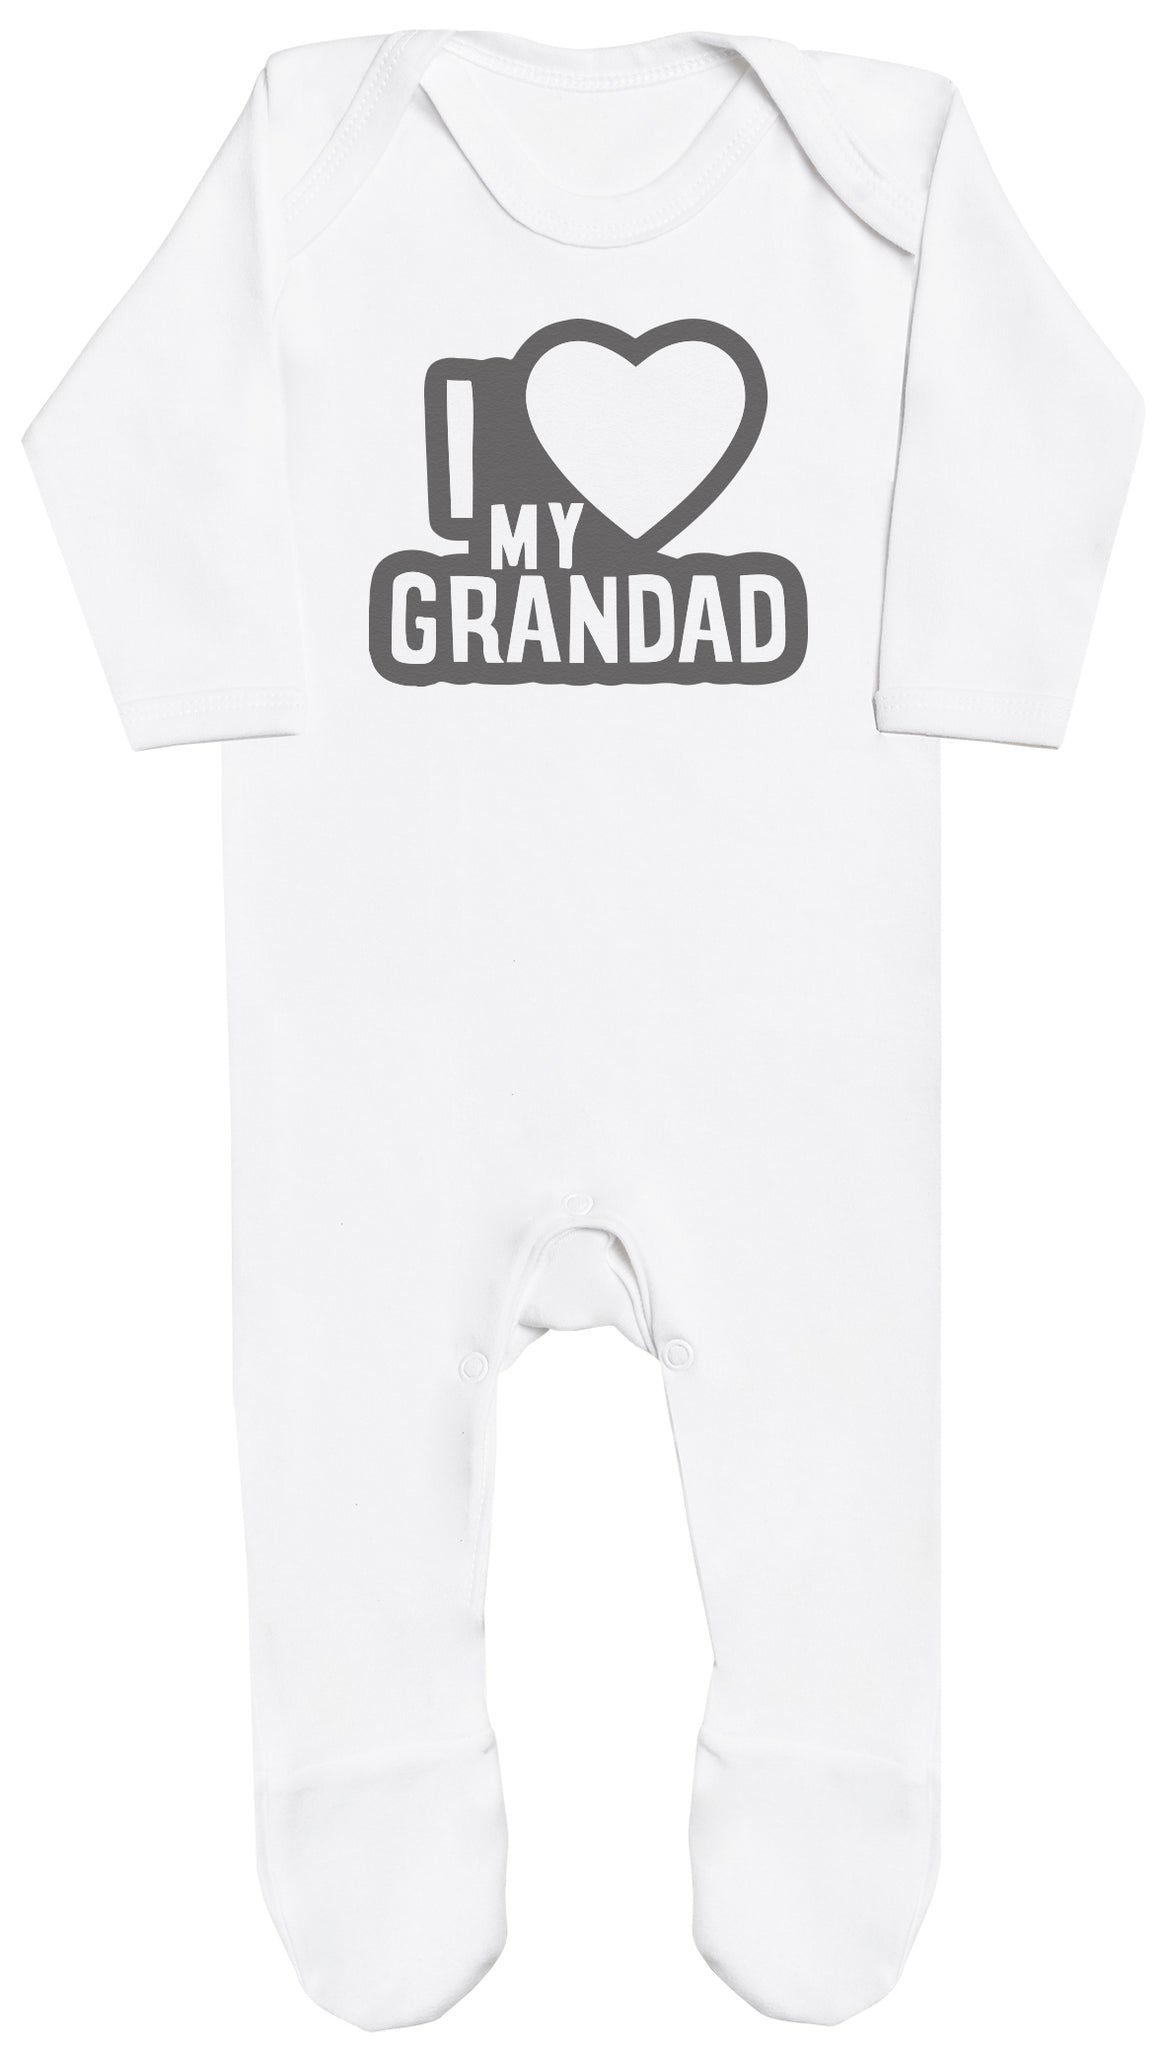 I Love My Grandad Black Outline Baby Romper